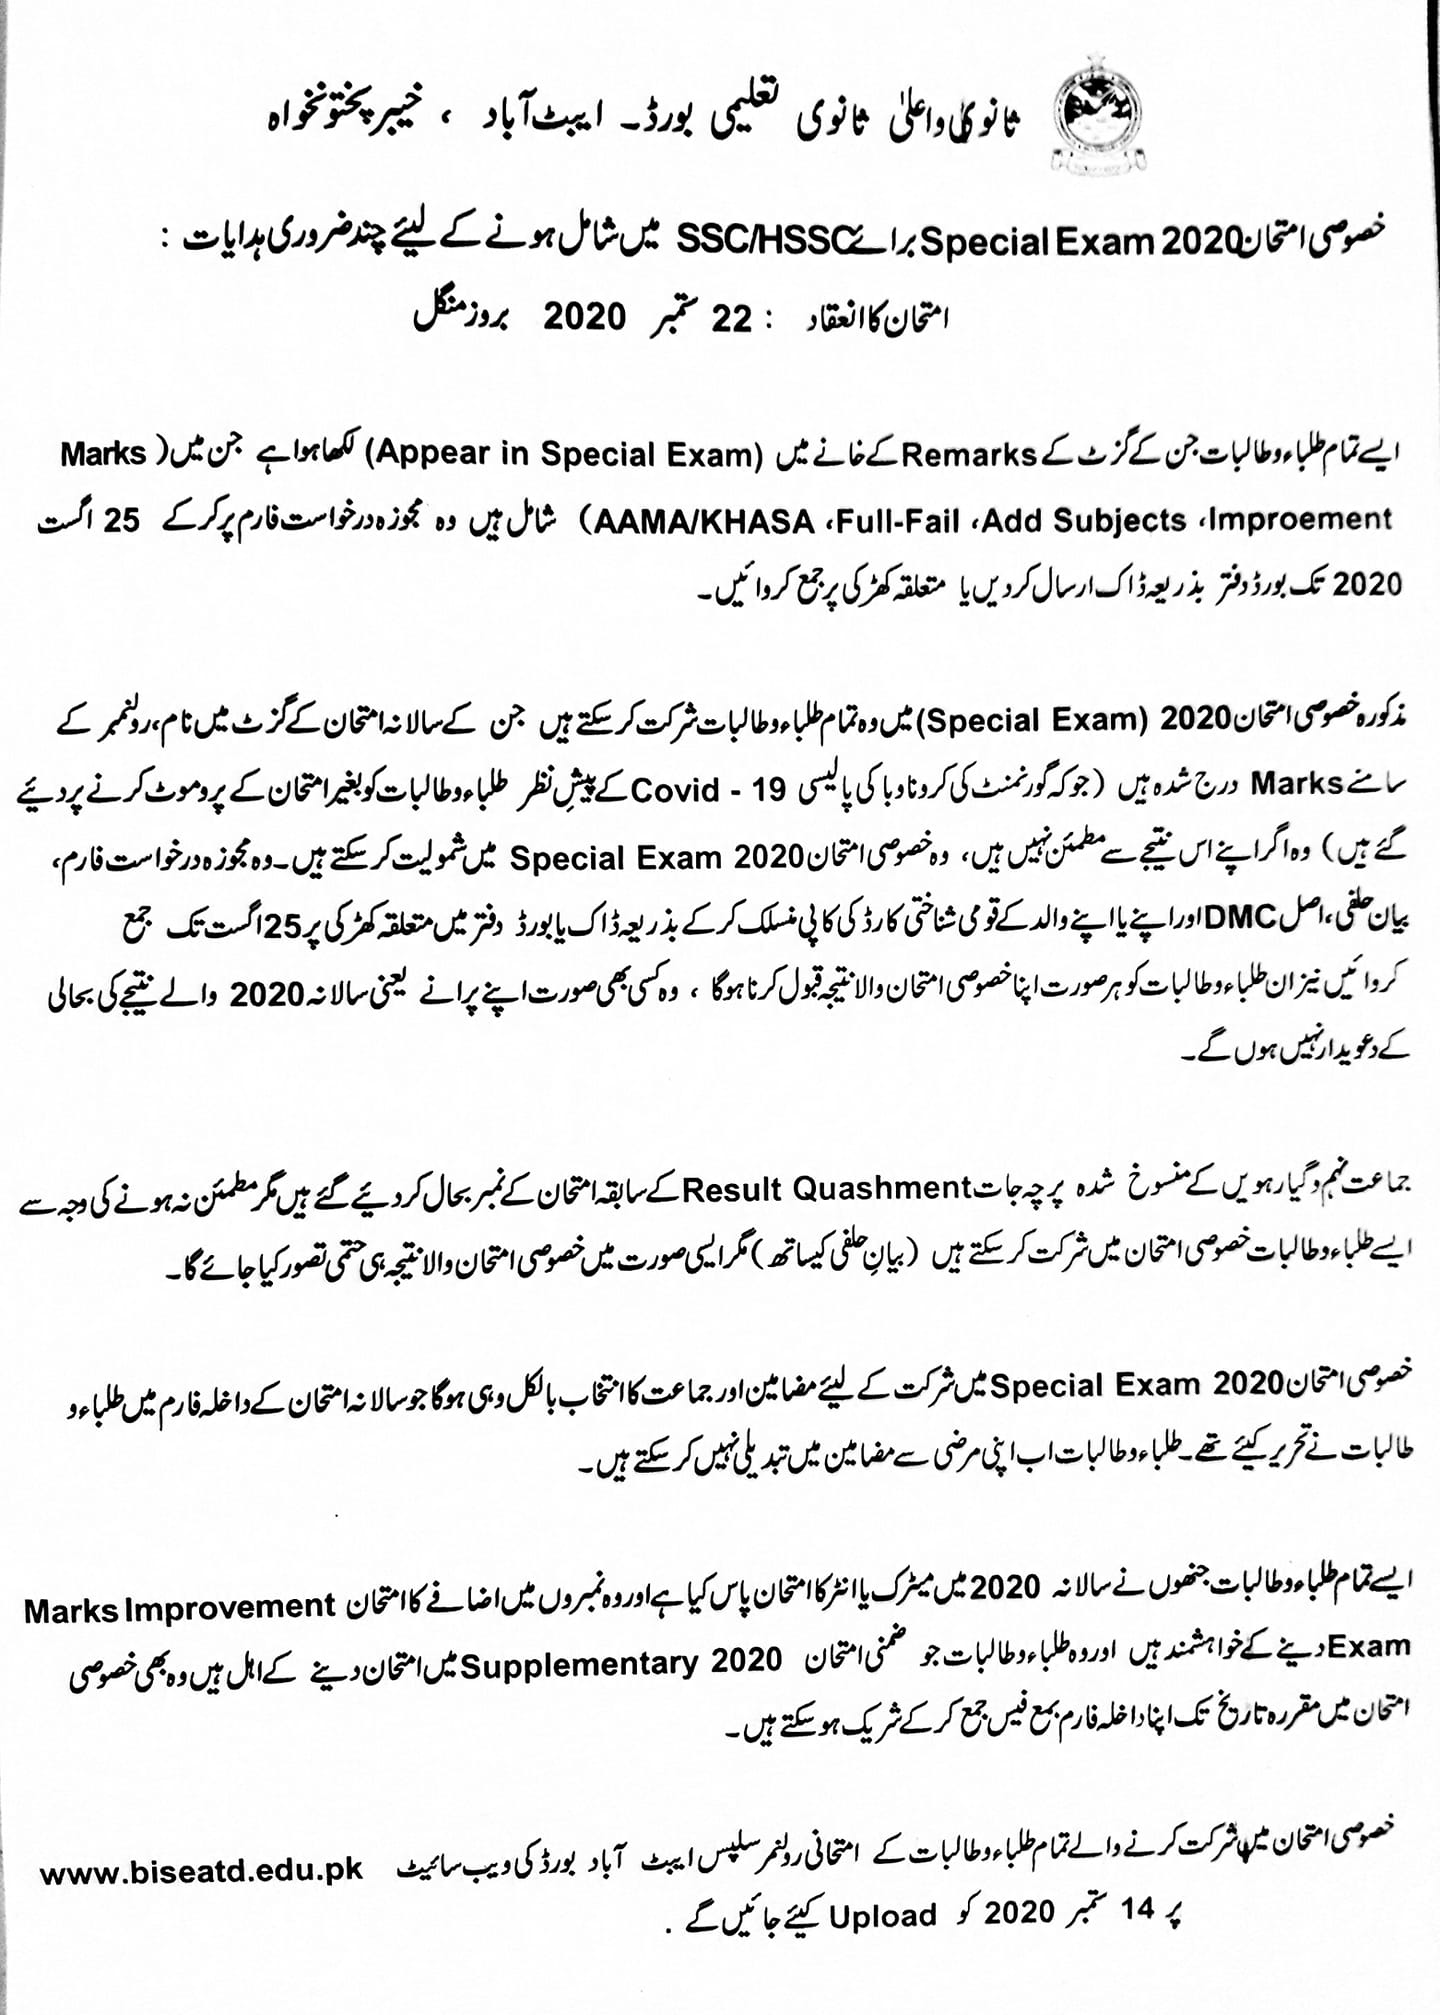 Important Instructions to Appear in SSC HSSC Special Exam 2020 Abbottabad Board